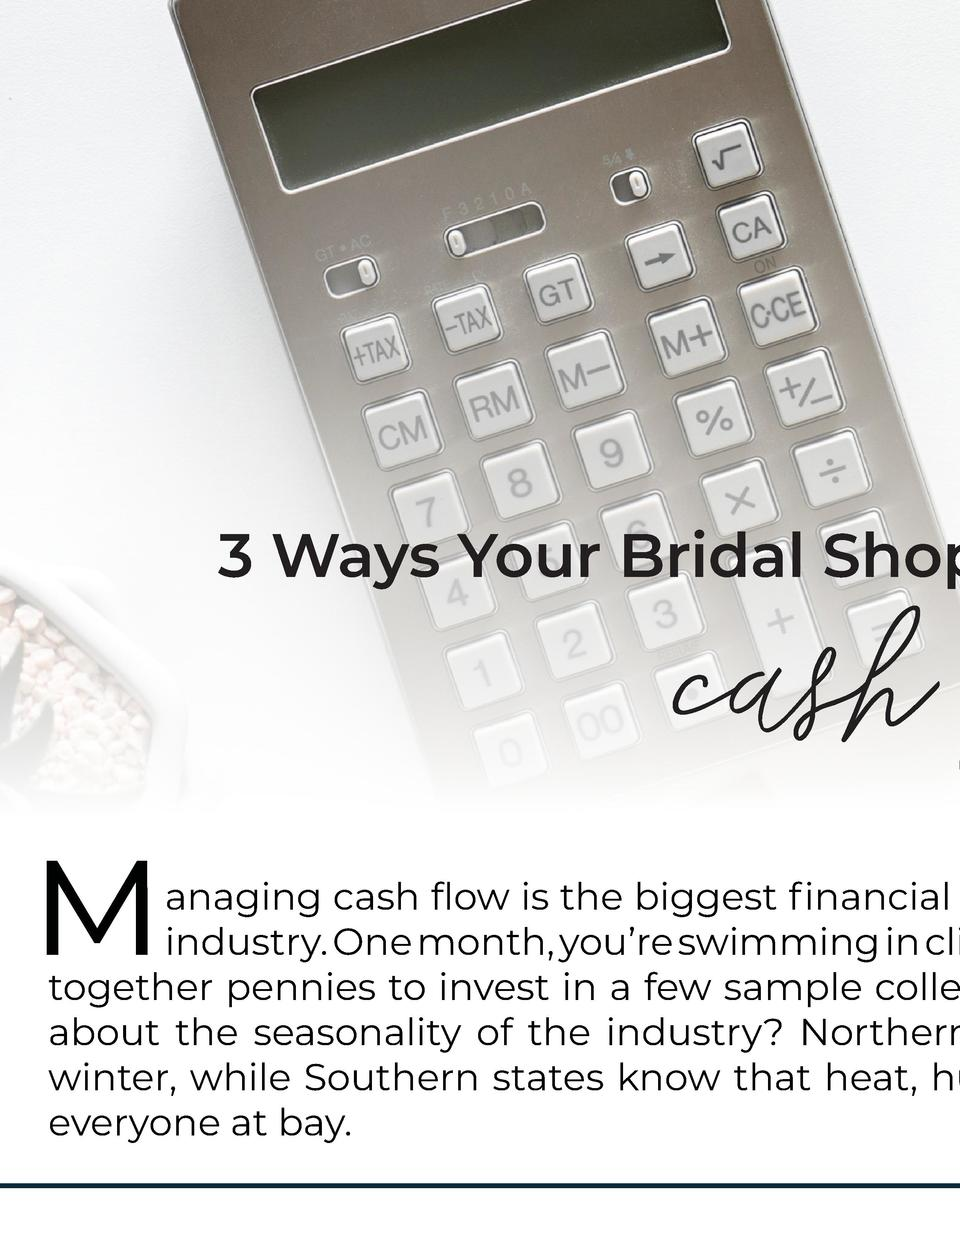 3 Ways Your Bridal Shop  M  cash  anaging cash flow is the biggest financial industry. One month, you   re swimming in cli...